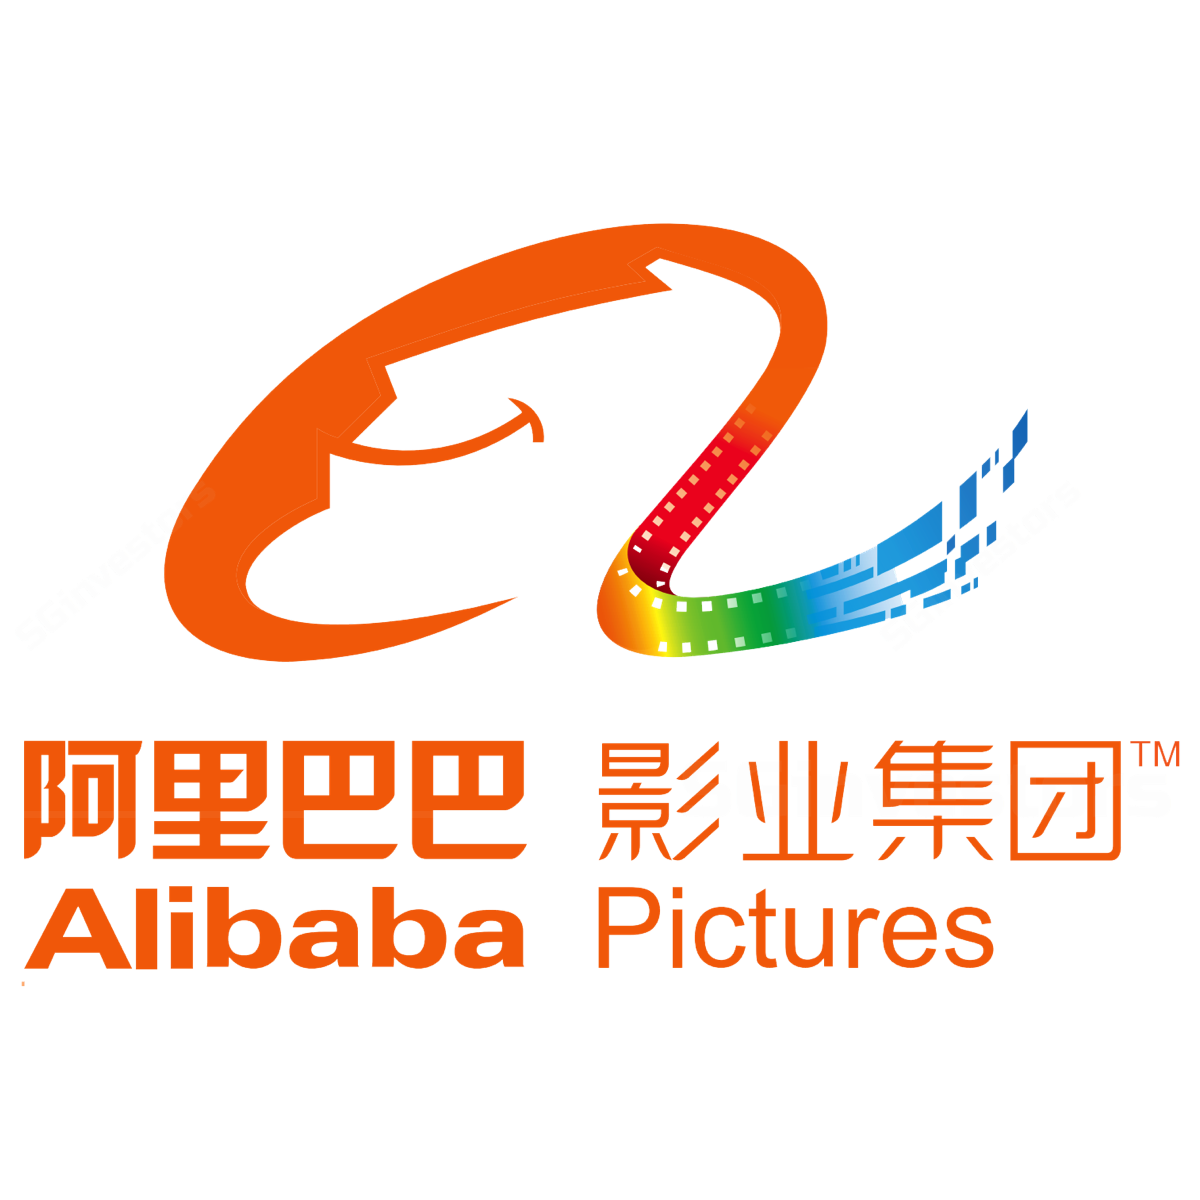 ALIBABA PICTURES GROUP LIMITED (SGX:S91) | SGinvestors.io